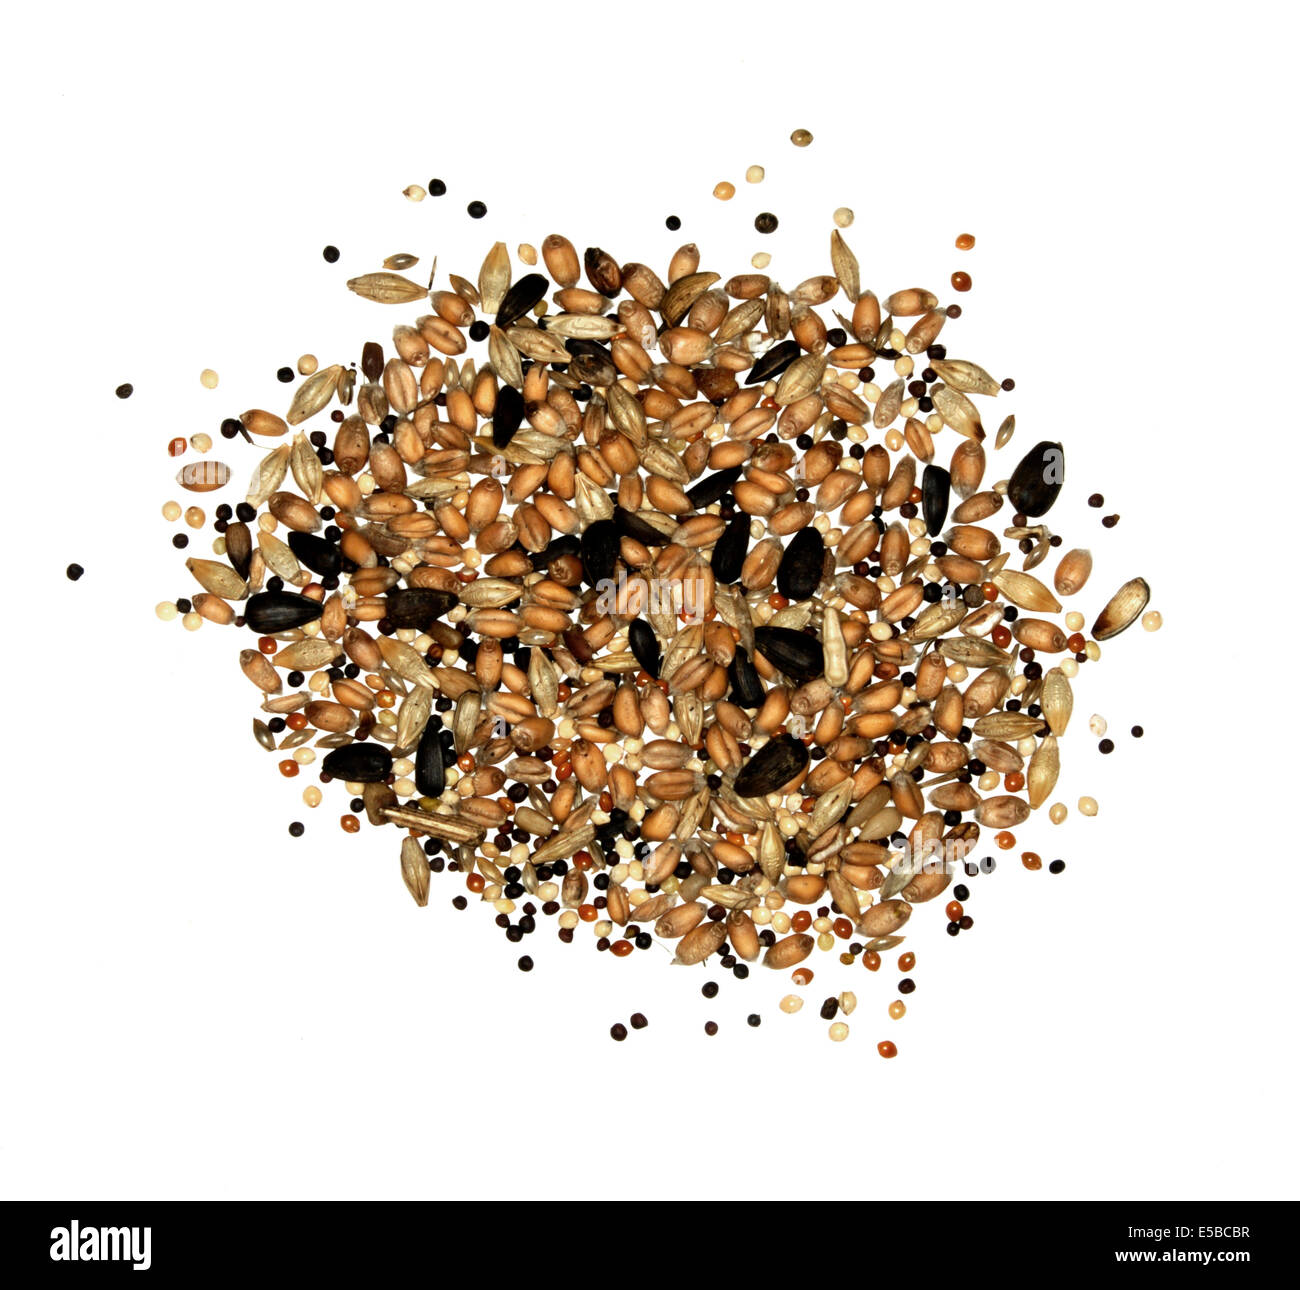 Mixed Birdseed for garden bird feeder - Stock Image